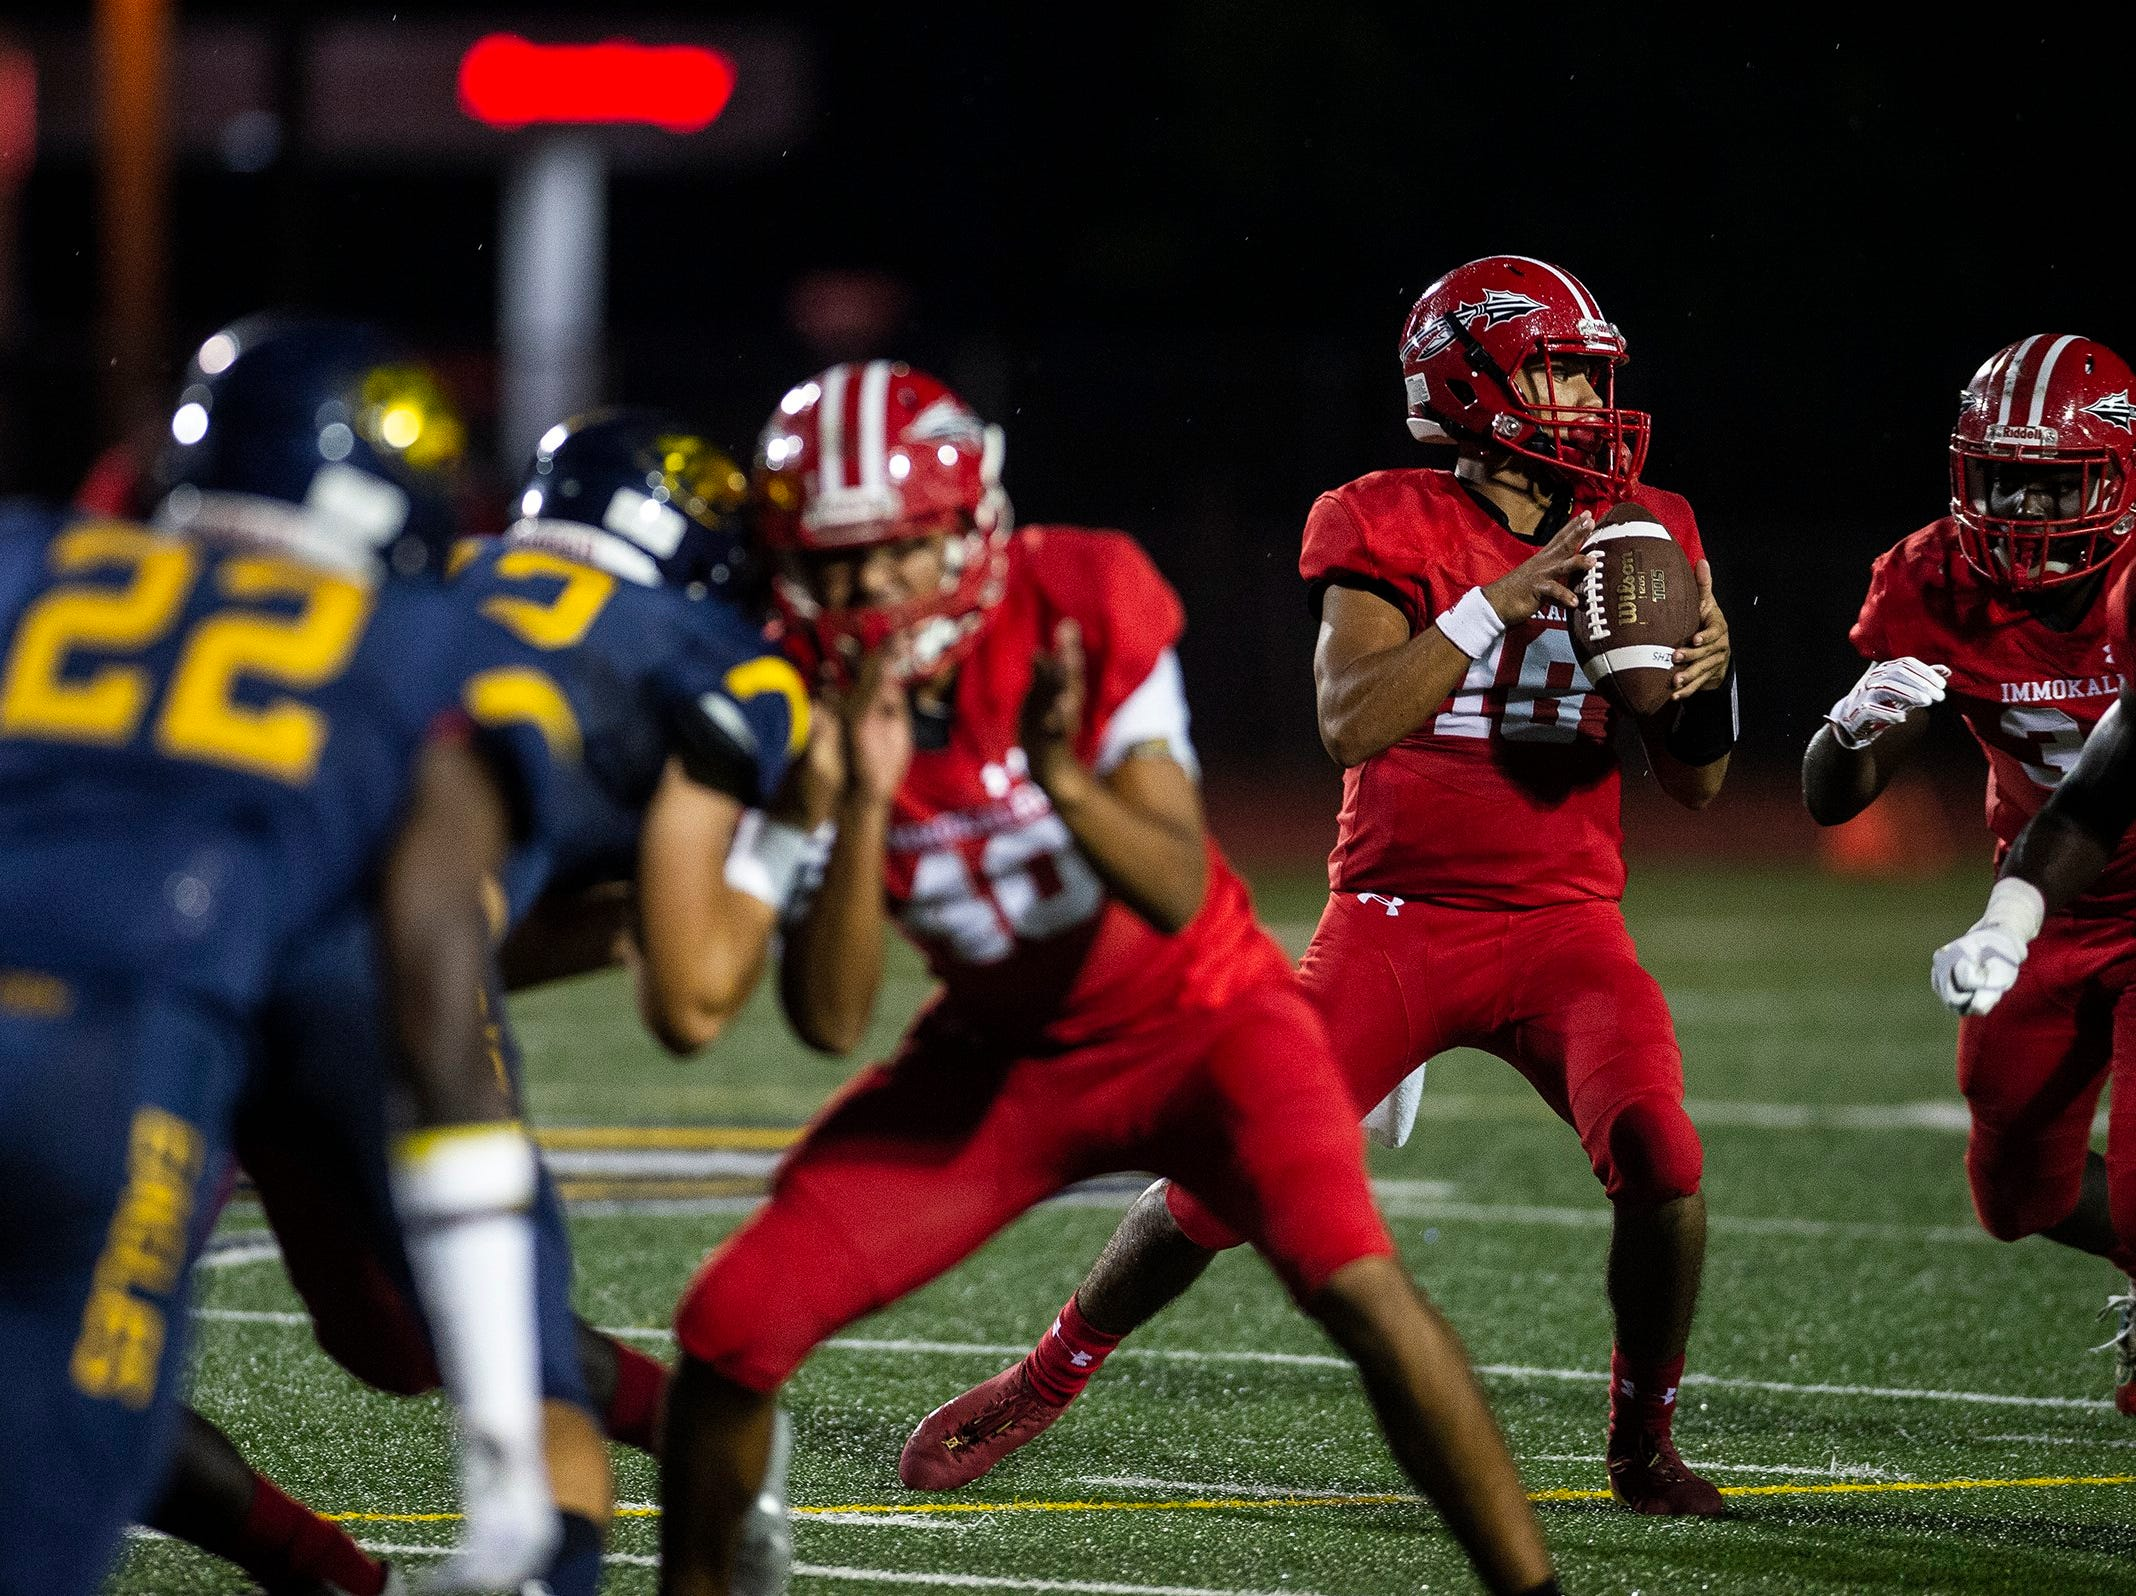 Immokalee High School quarterback Reynaldo Rosales looks for an open pass during a game against Naples High School in Naples, Fla. on Friday, September 21, 2018.